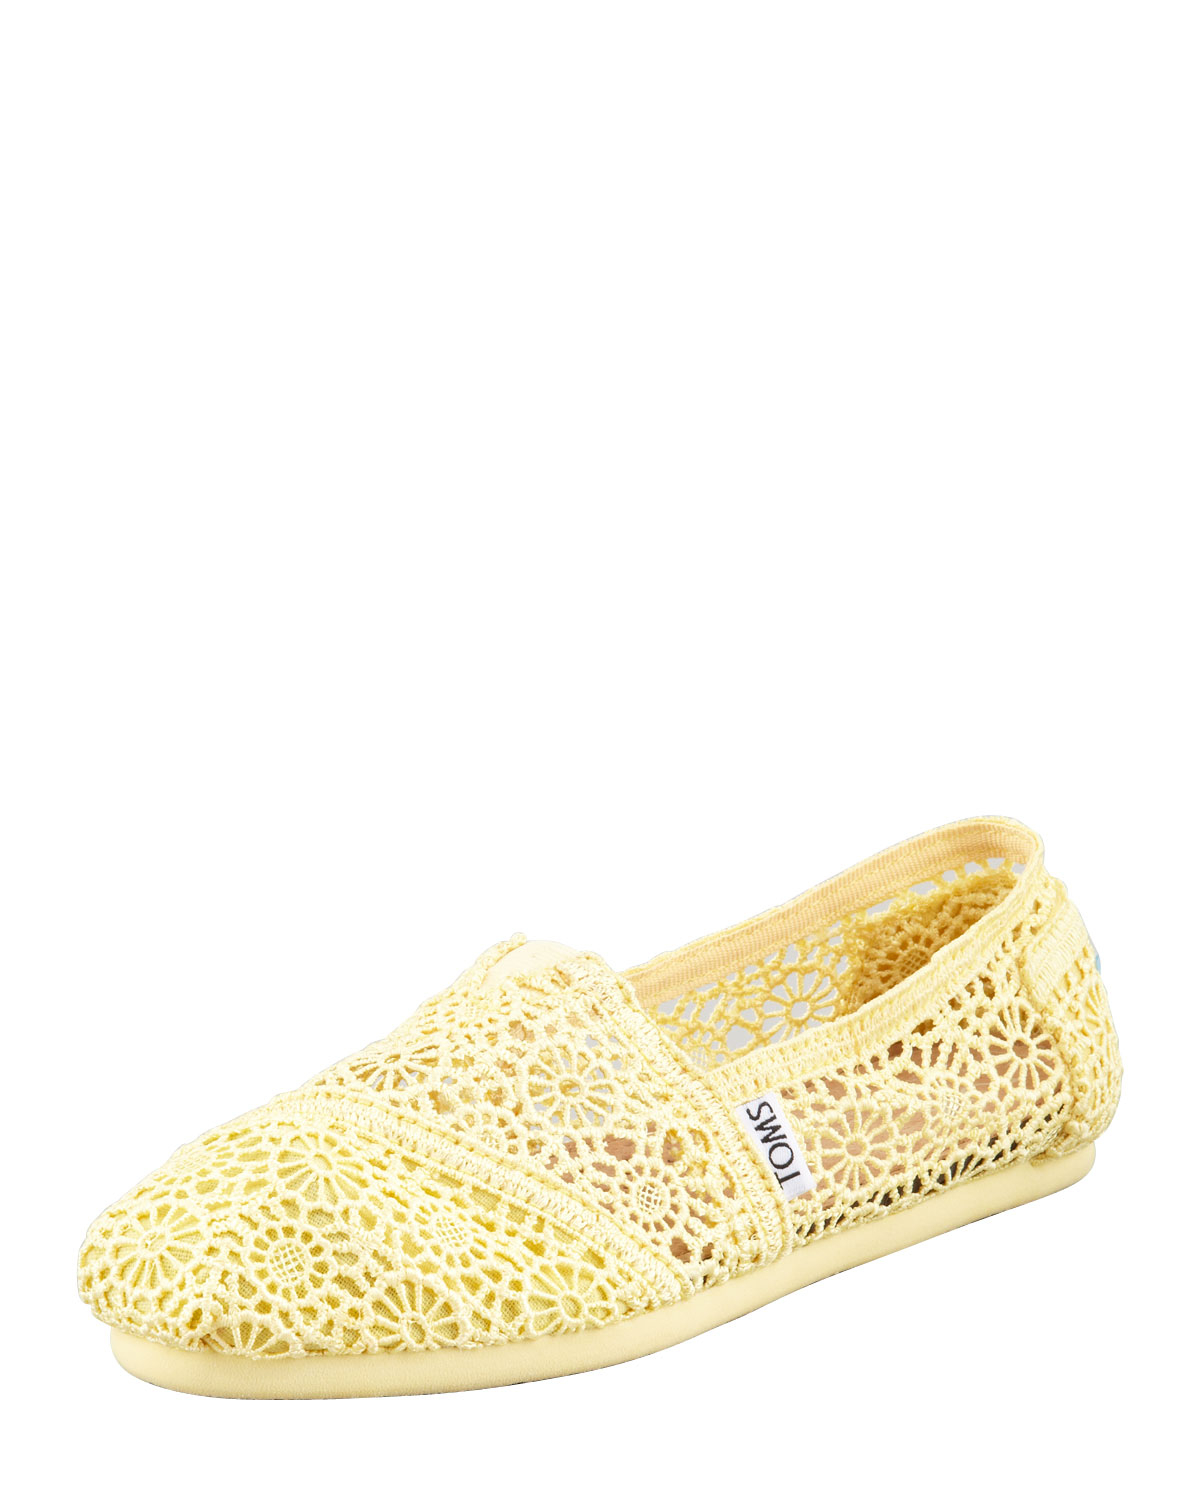 3f6d627ab4b Lyst - TOMS Crochet Slip-On in Yellow